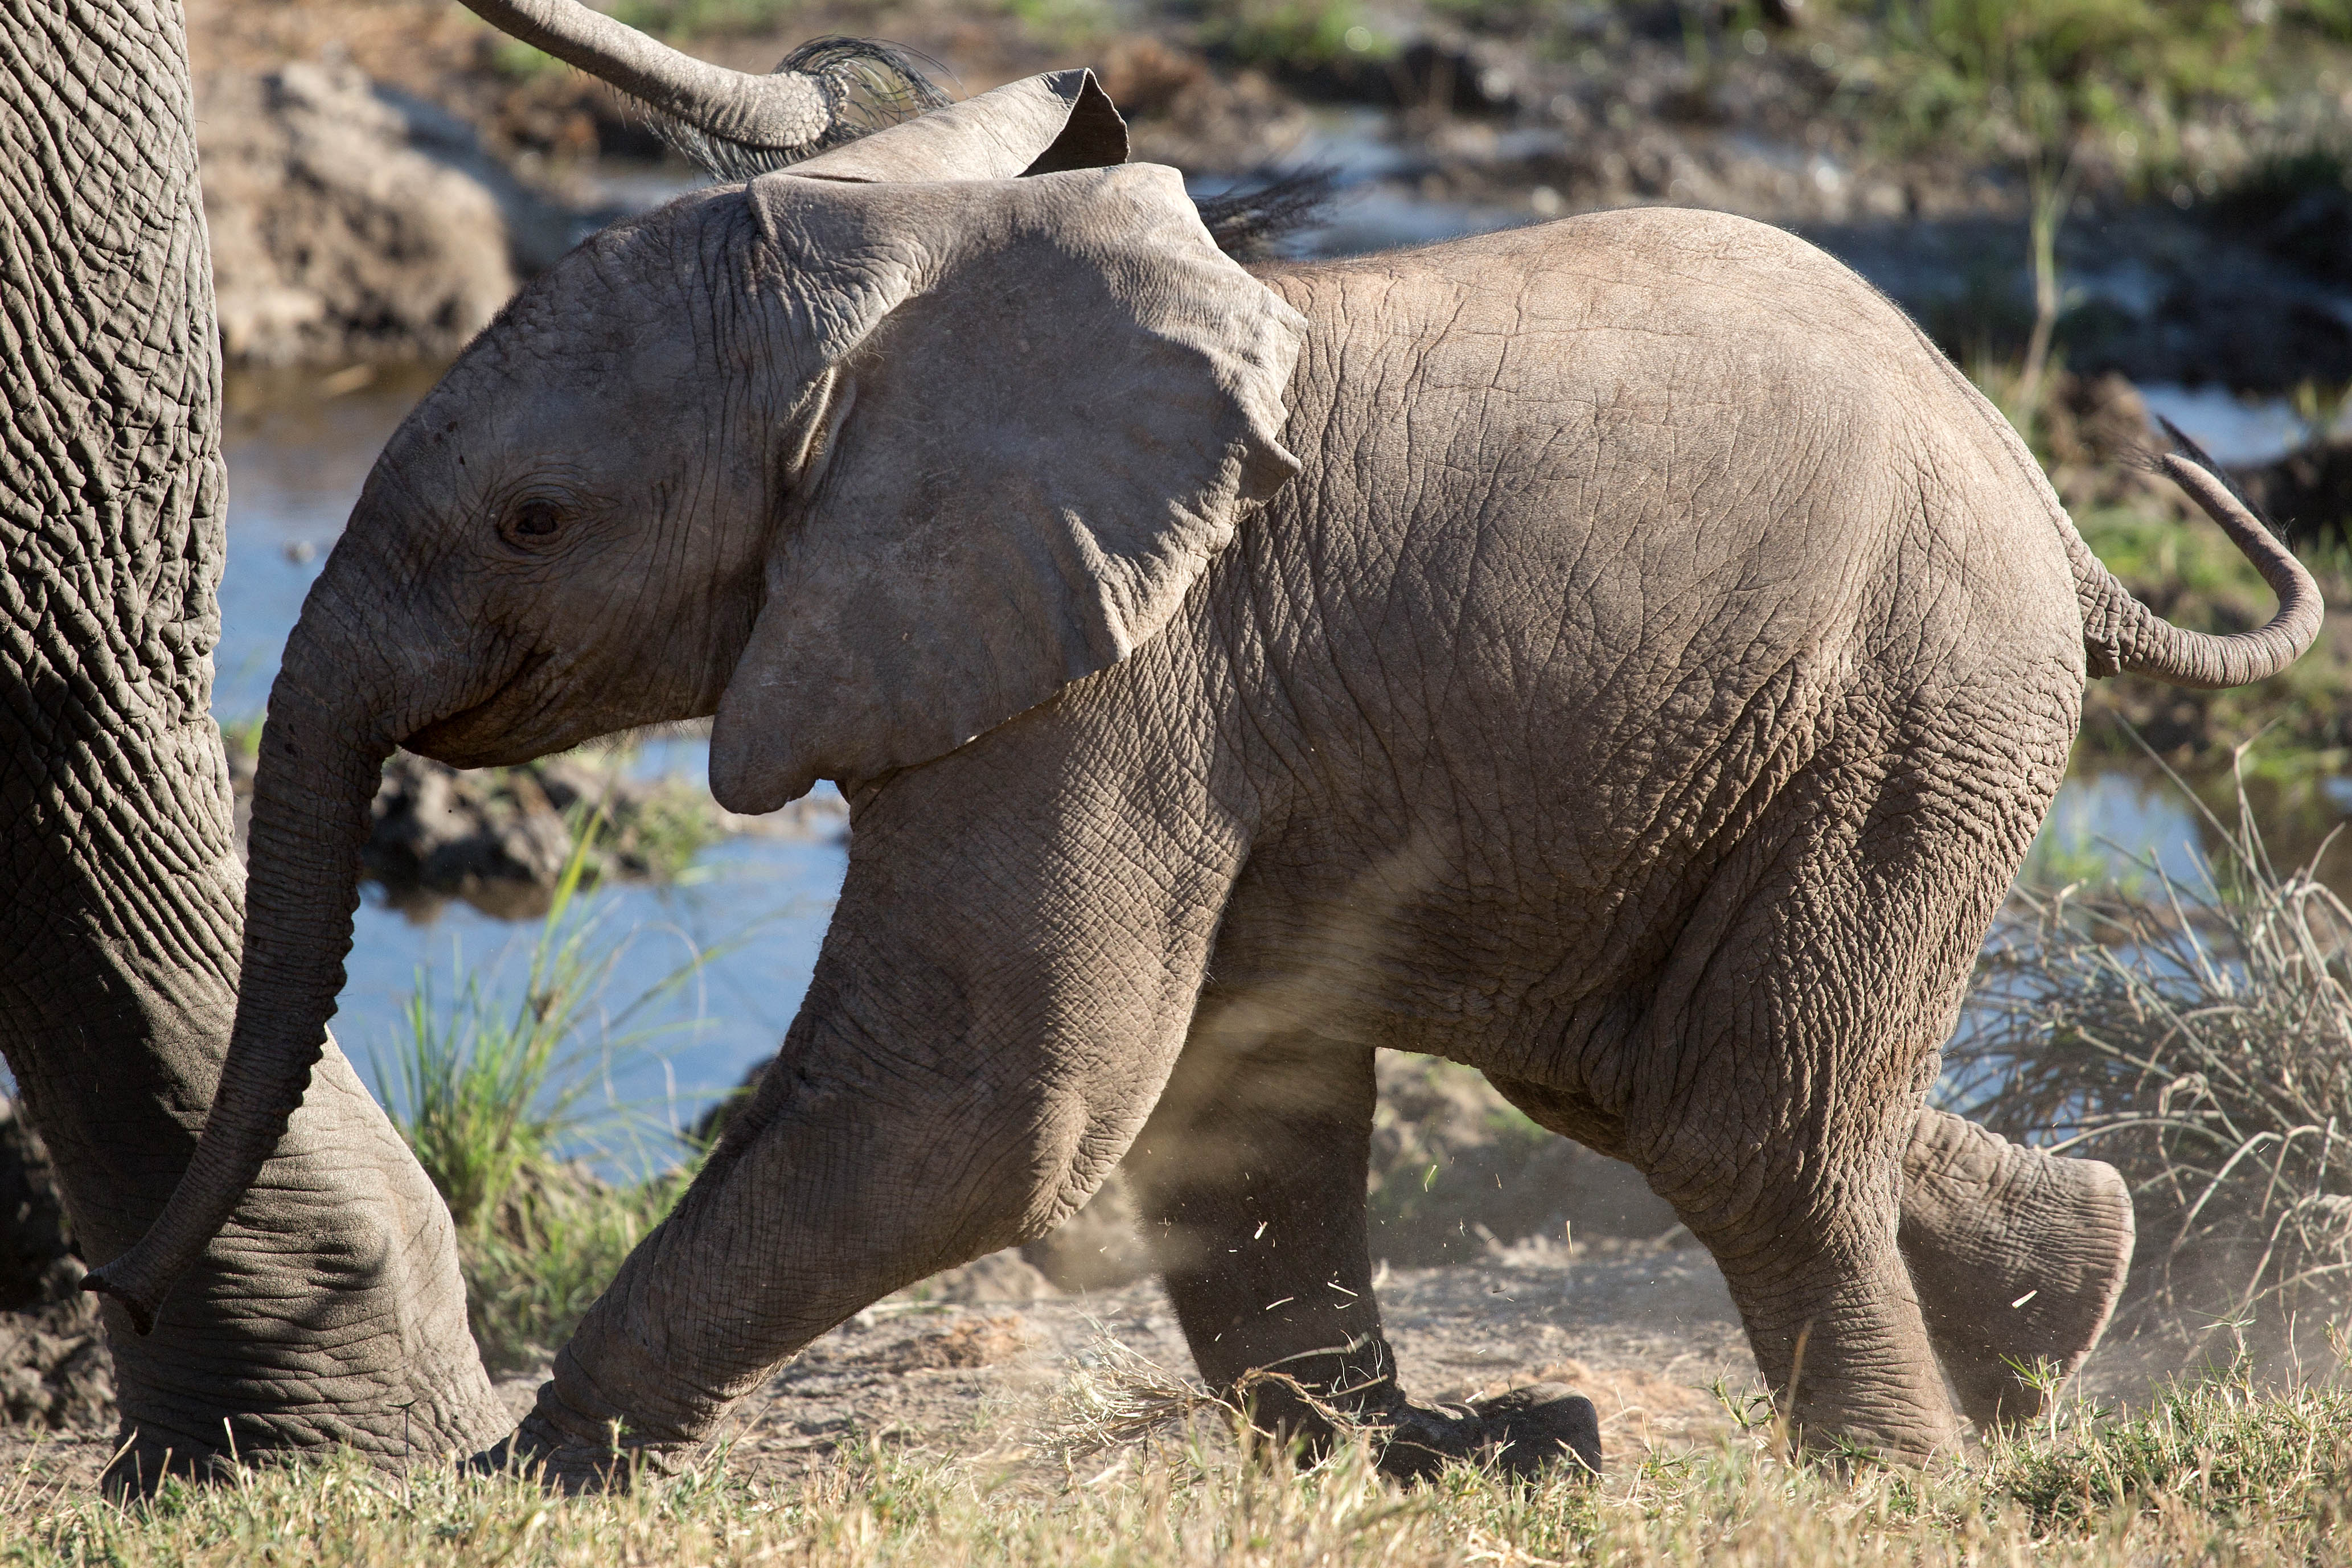 30 July 2018. Elephant Relocation from Venetia Limpopo Nature Reserve (South Africa) to Zinave Reserve (Mozambique). Picture: JAMES OATWAY